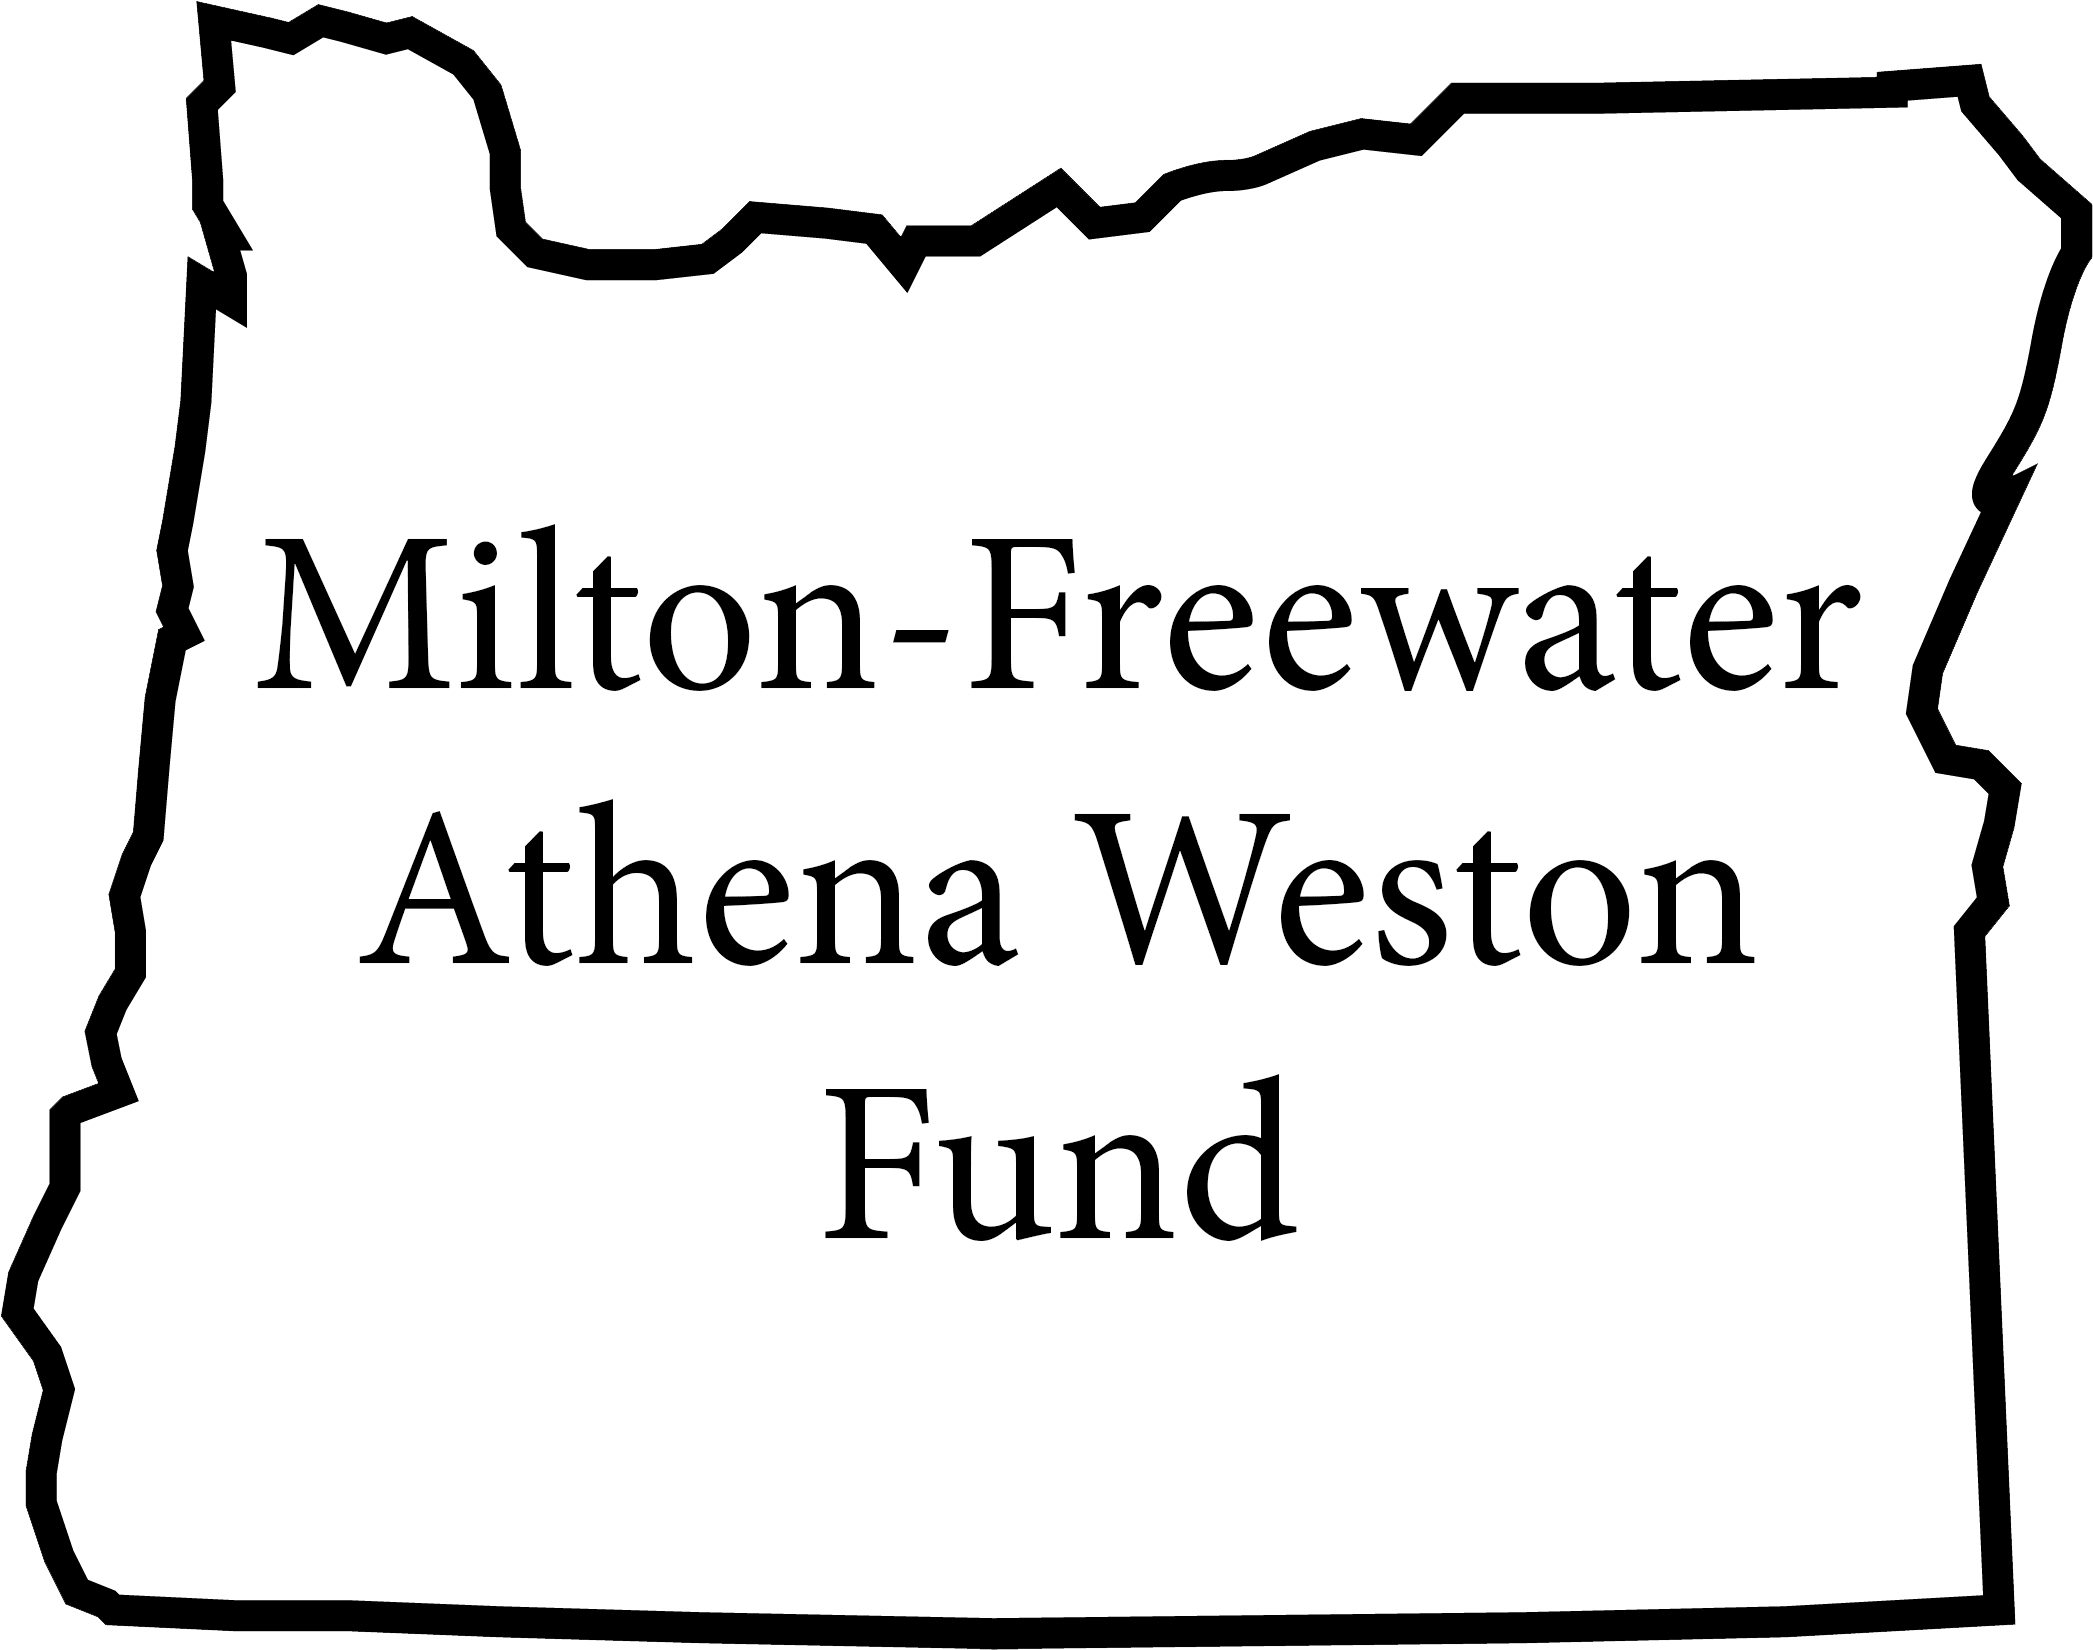 Milton-Freewater Valley Fund